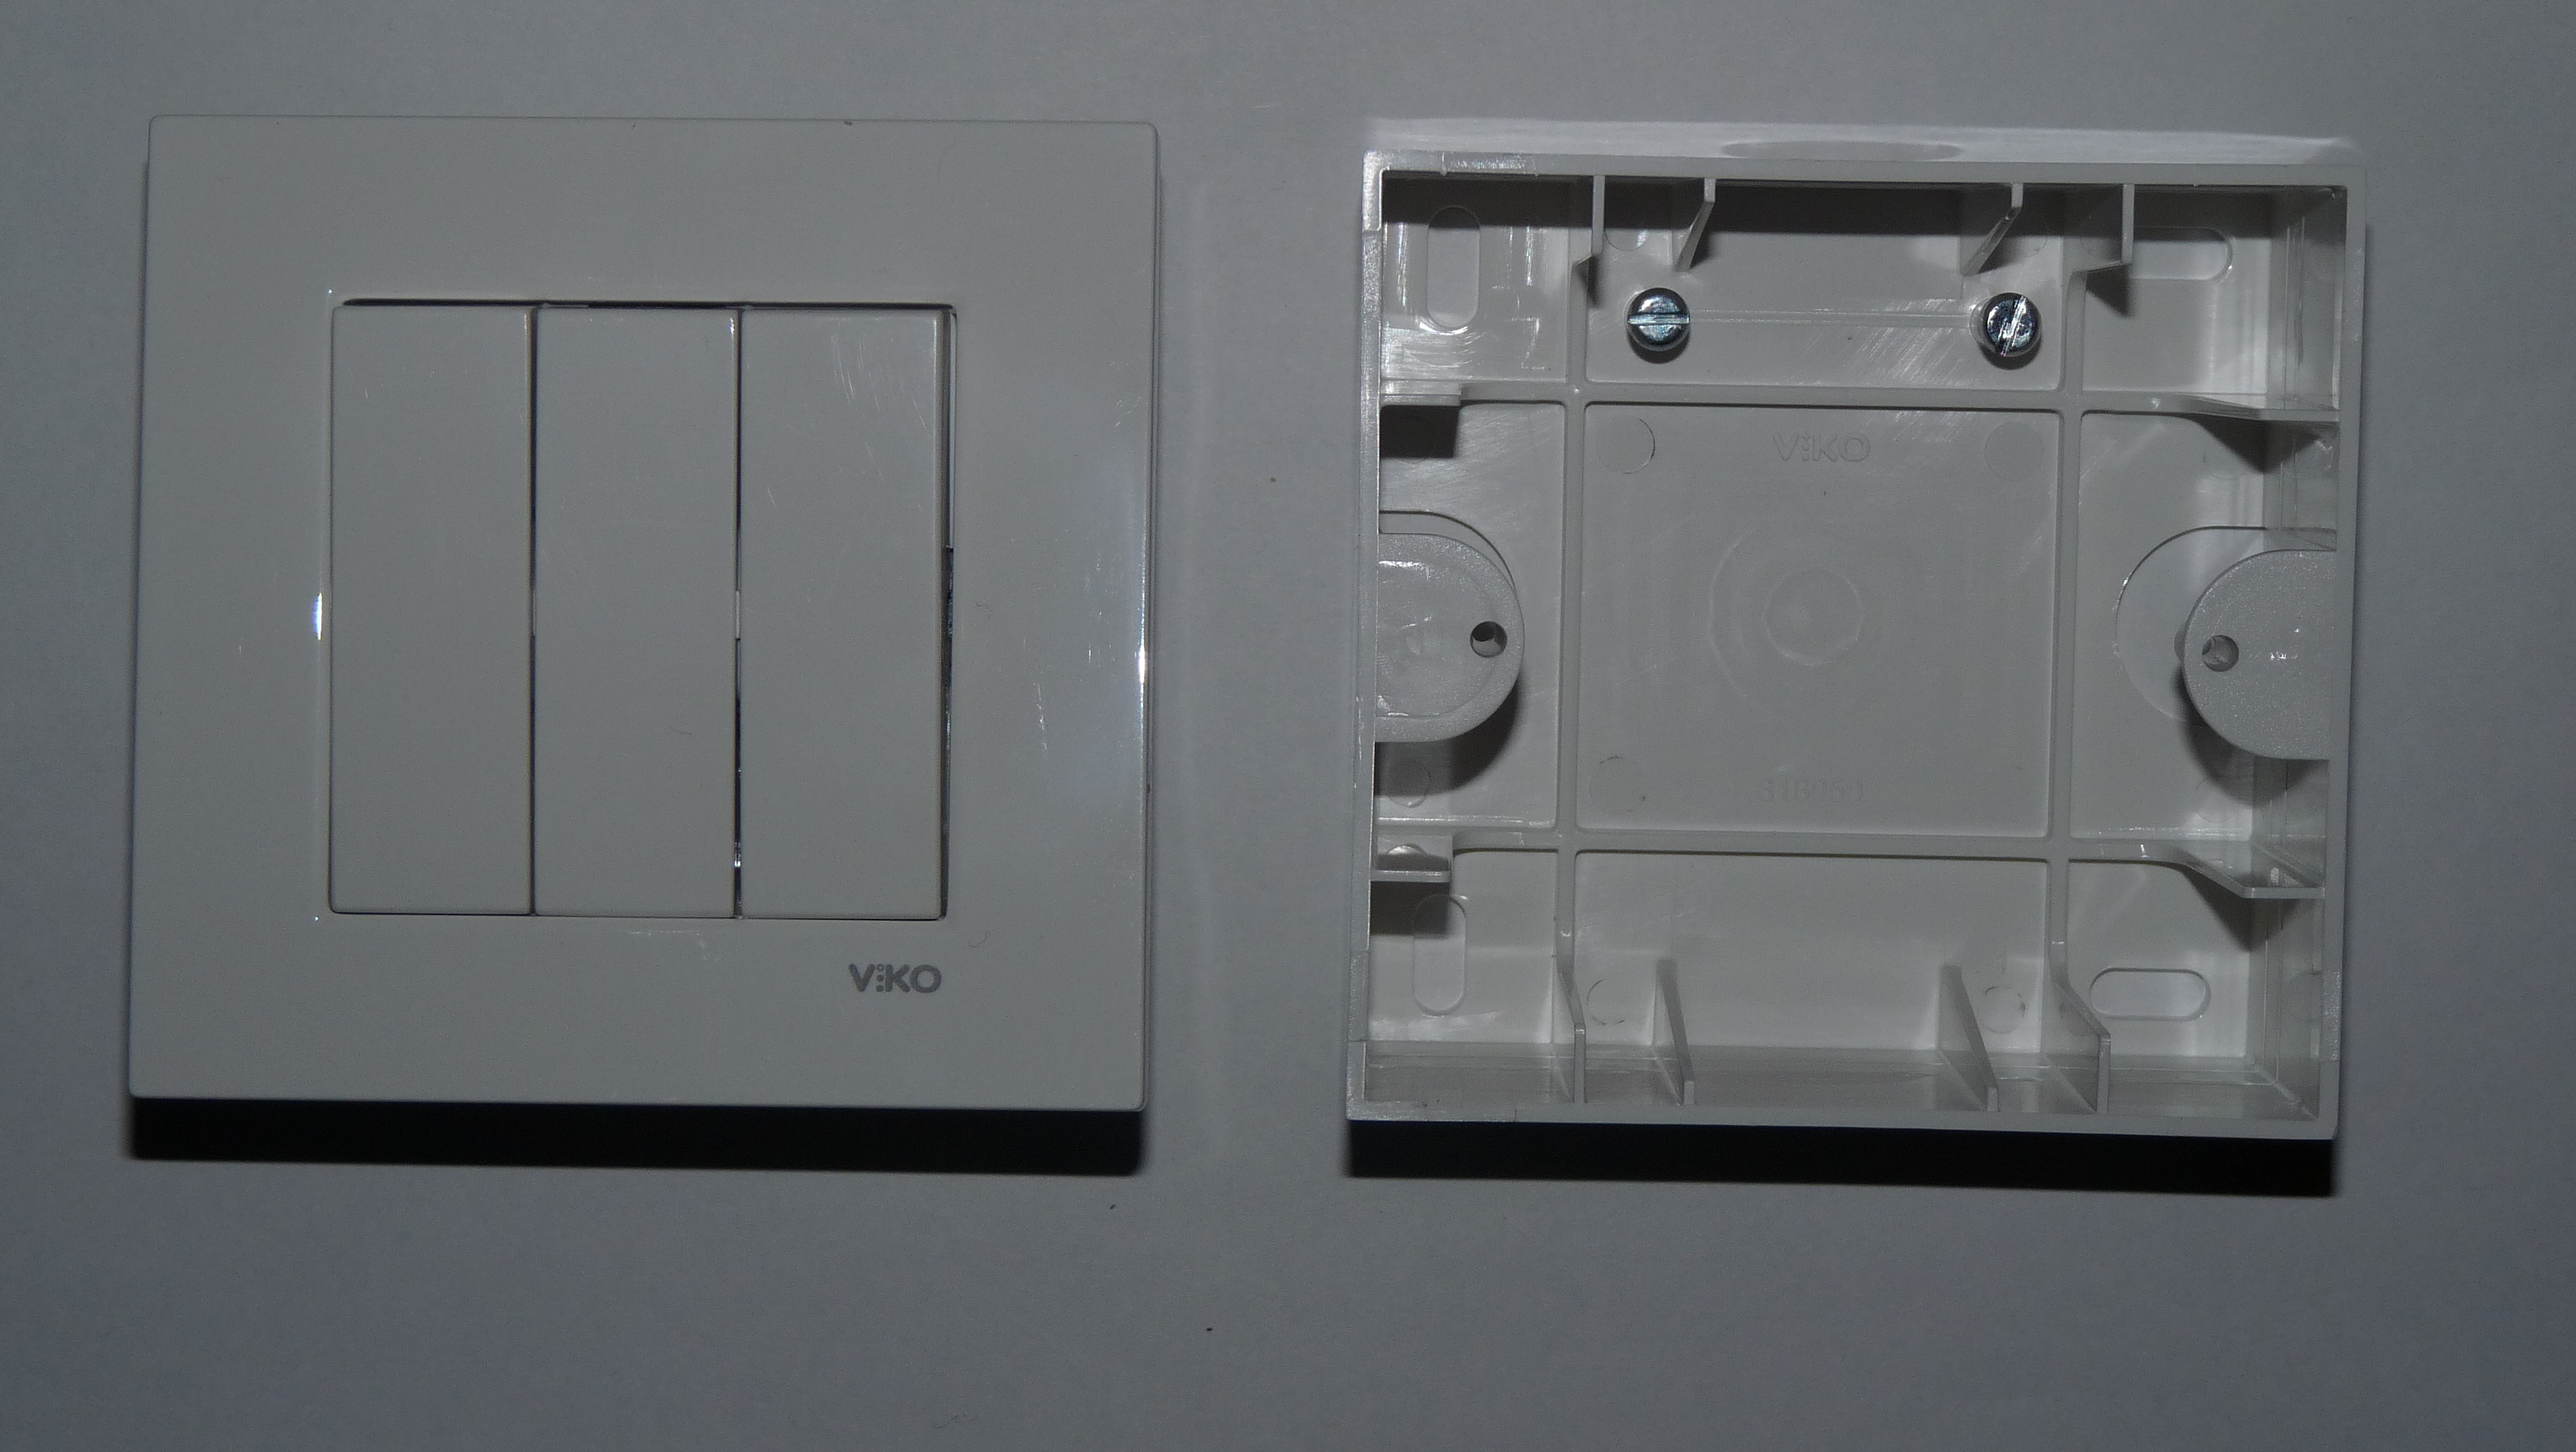 File:VIKO light switch with fitting box.JPG - Wikimedia Commons